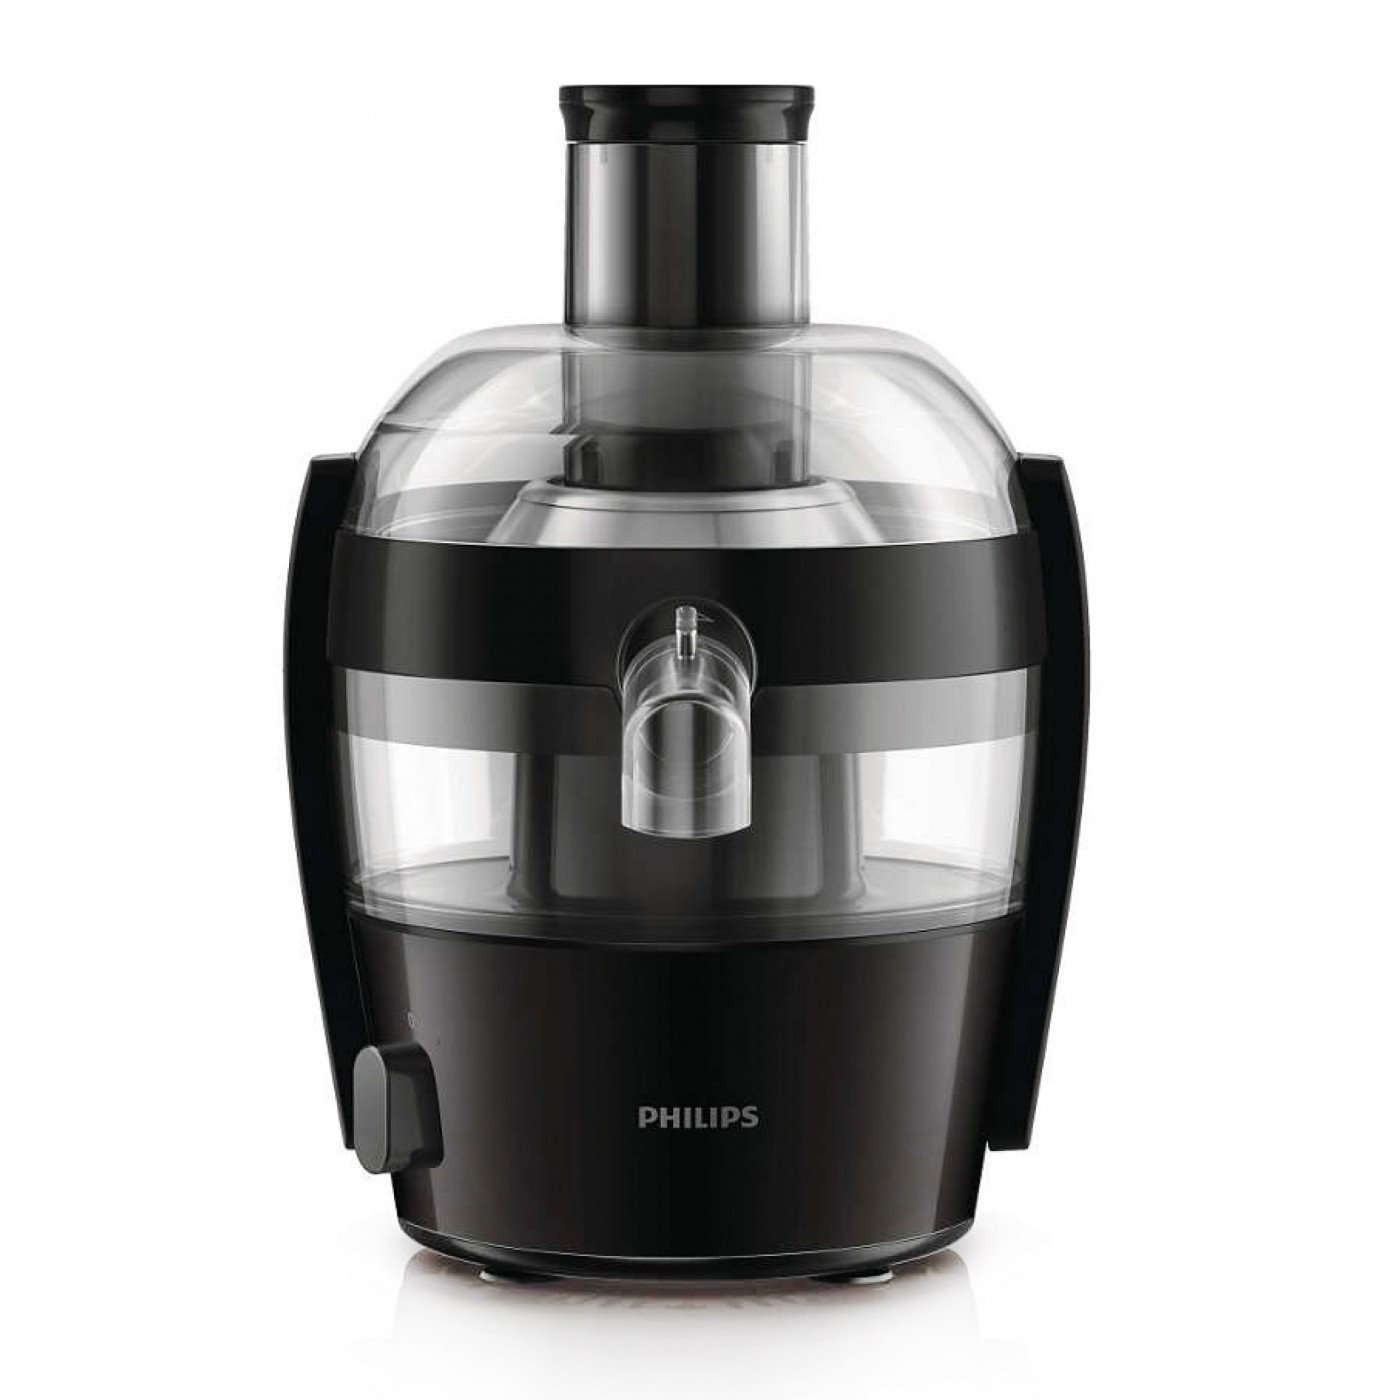 Philips entsafter - philips juicer